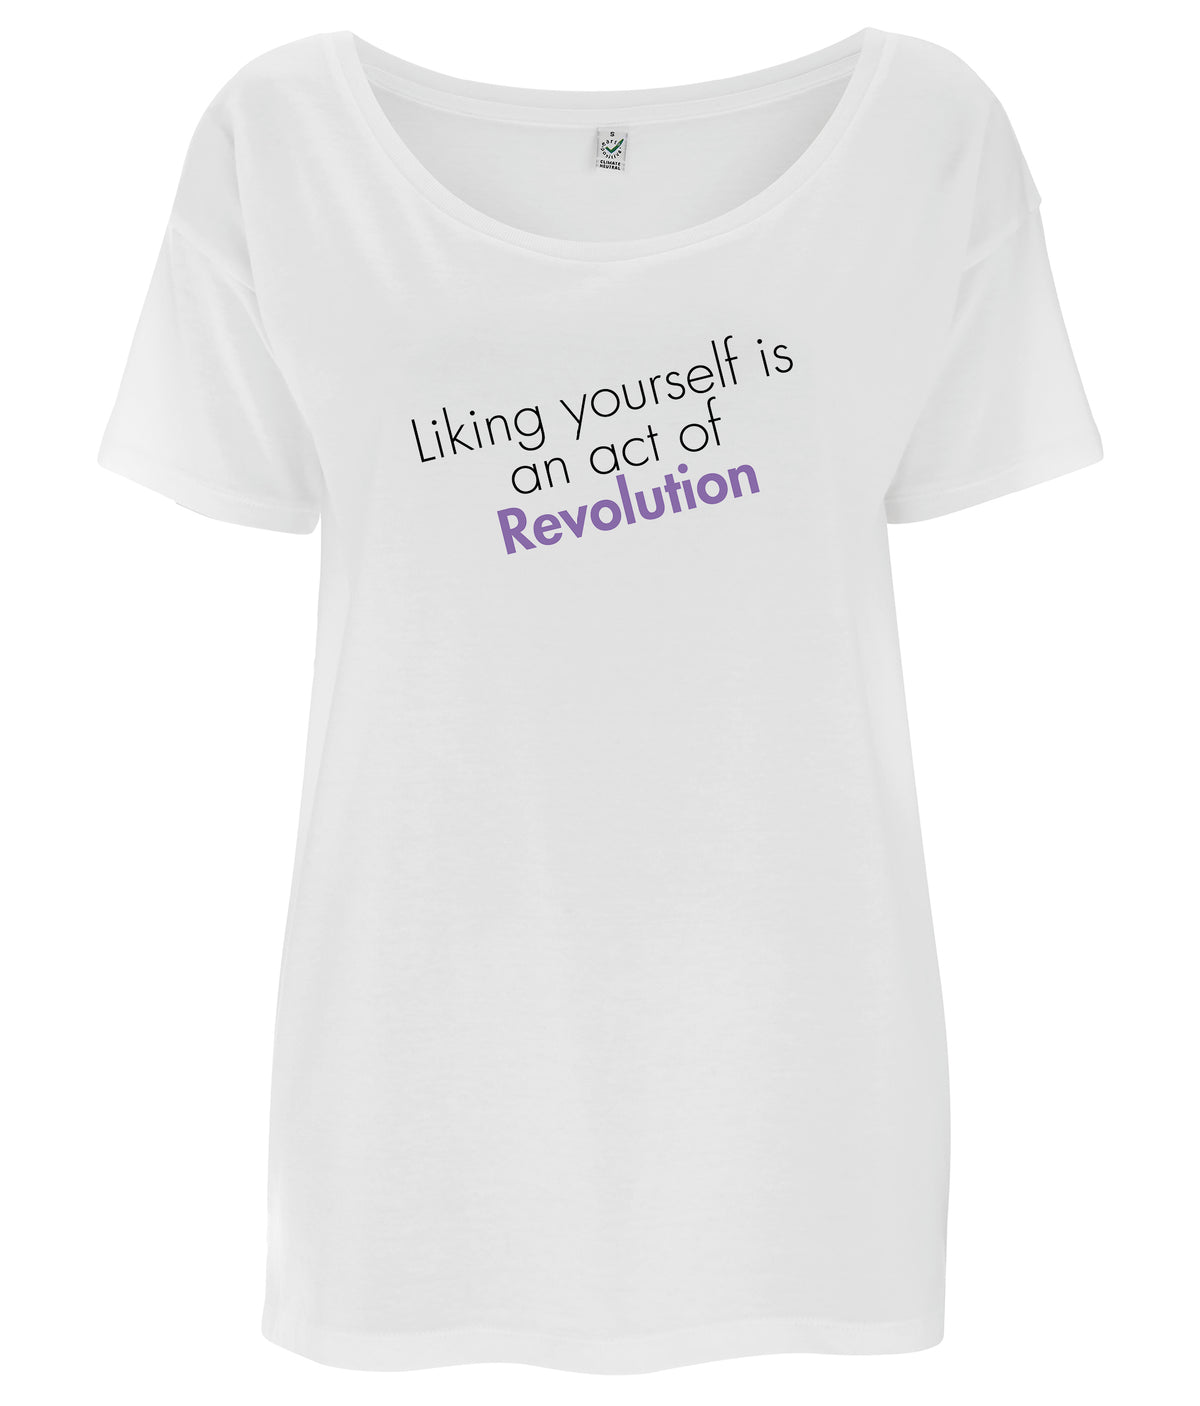 Liking Yourself Is An Act Of Revolution Tencel Blend Oversized Feminist T Shirt White